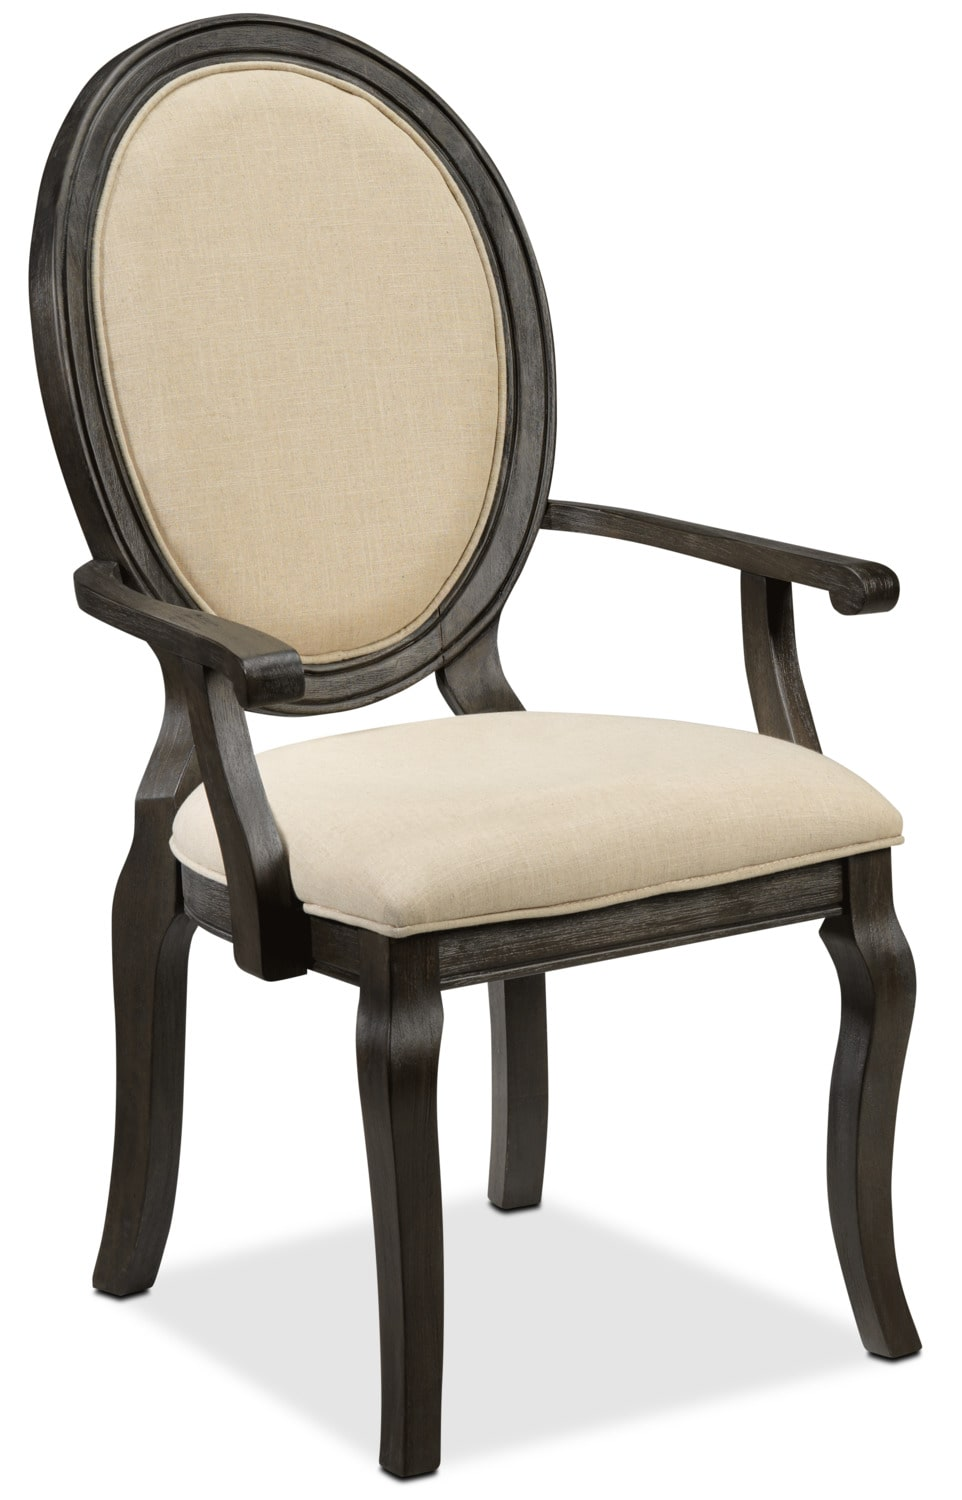 Dining Room Furniture - Victoria Arm Chair - Grey and Beige